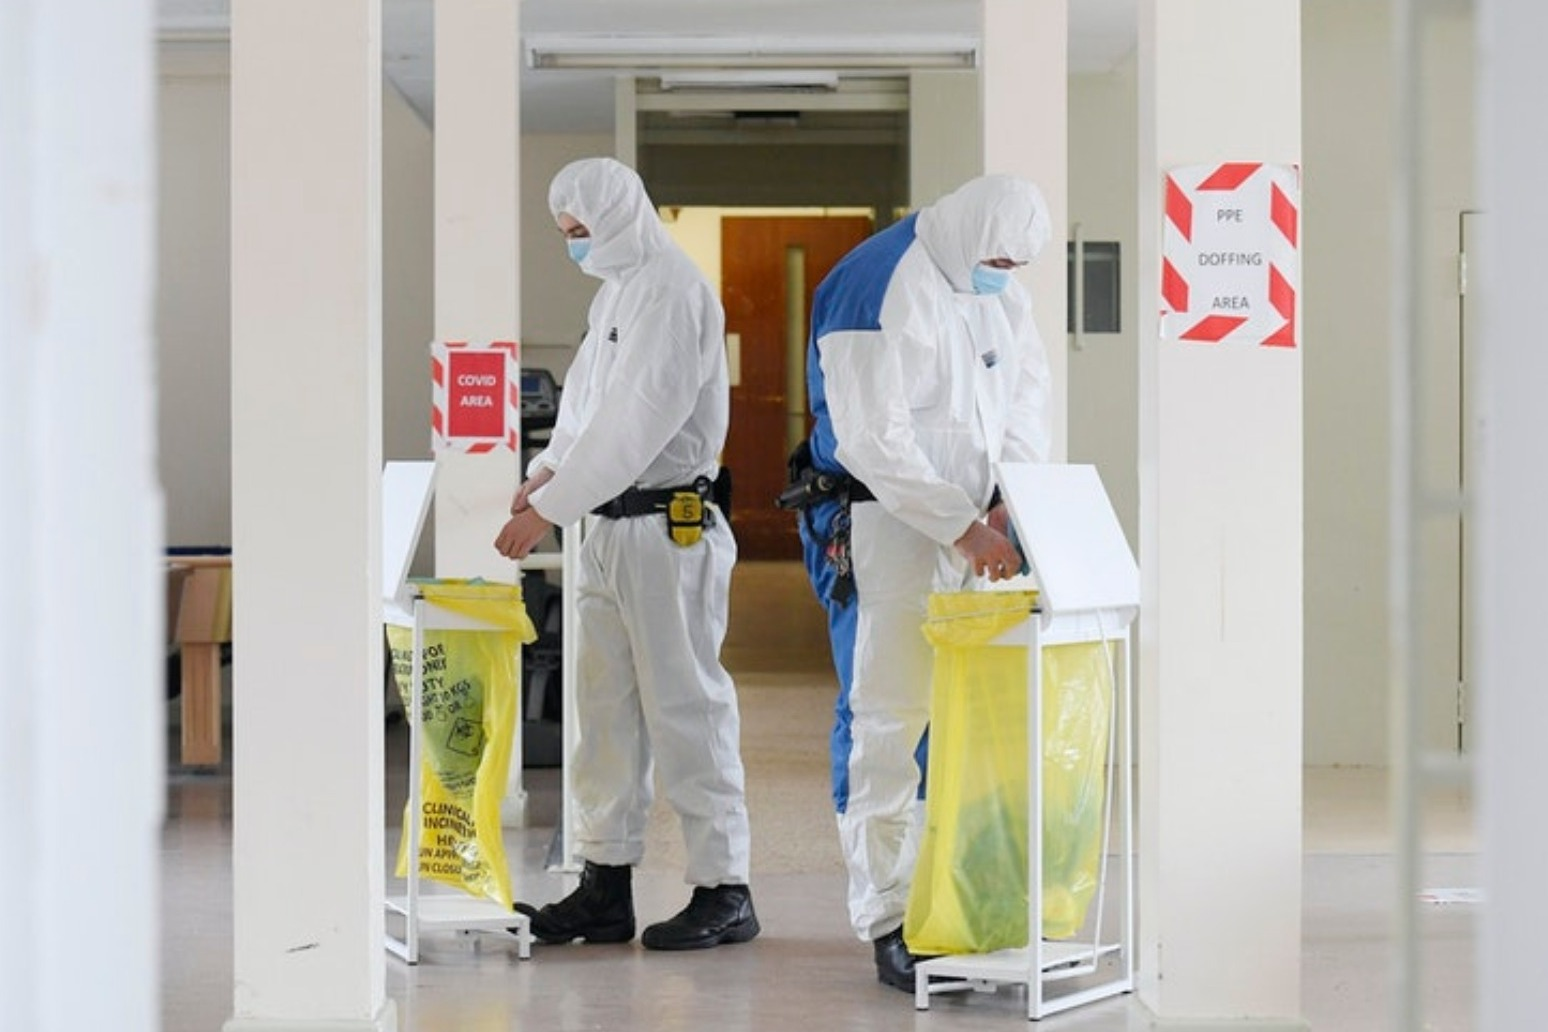 Committee slams 'astonishing' failure to financially plan for pandemic